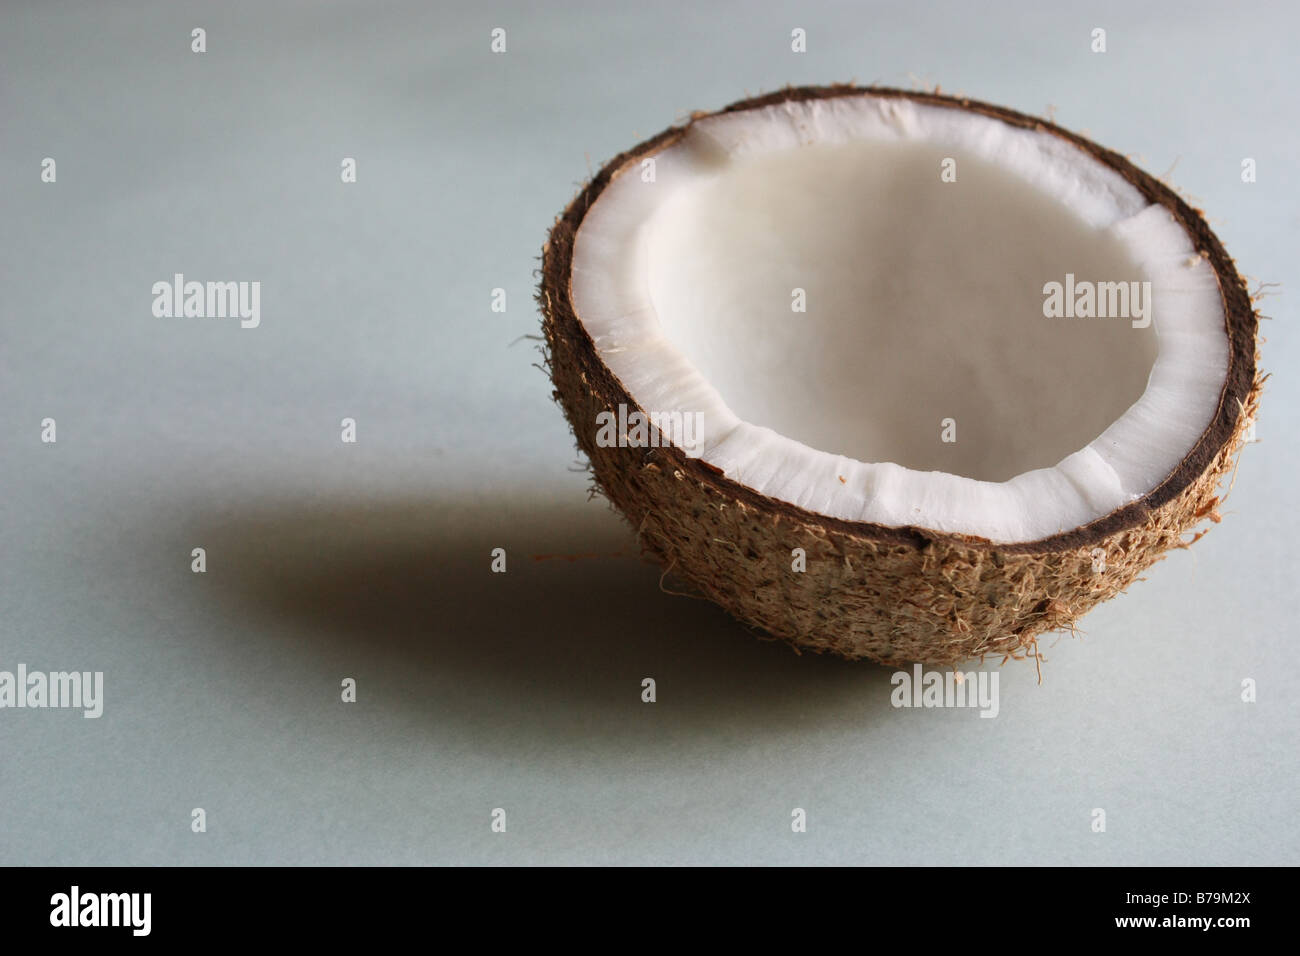 A coconut half in white background - Stock Image